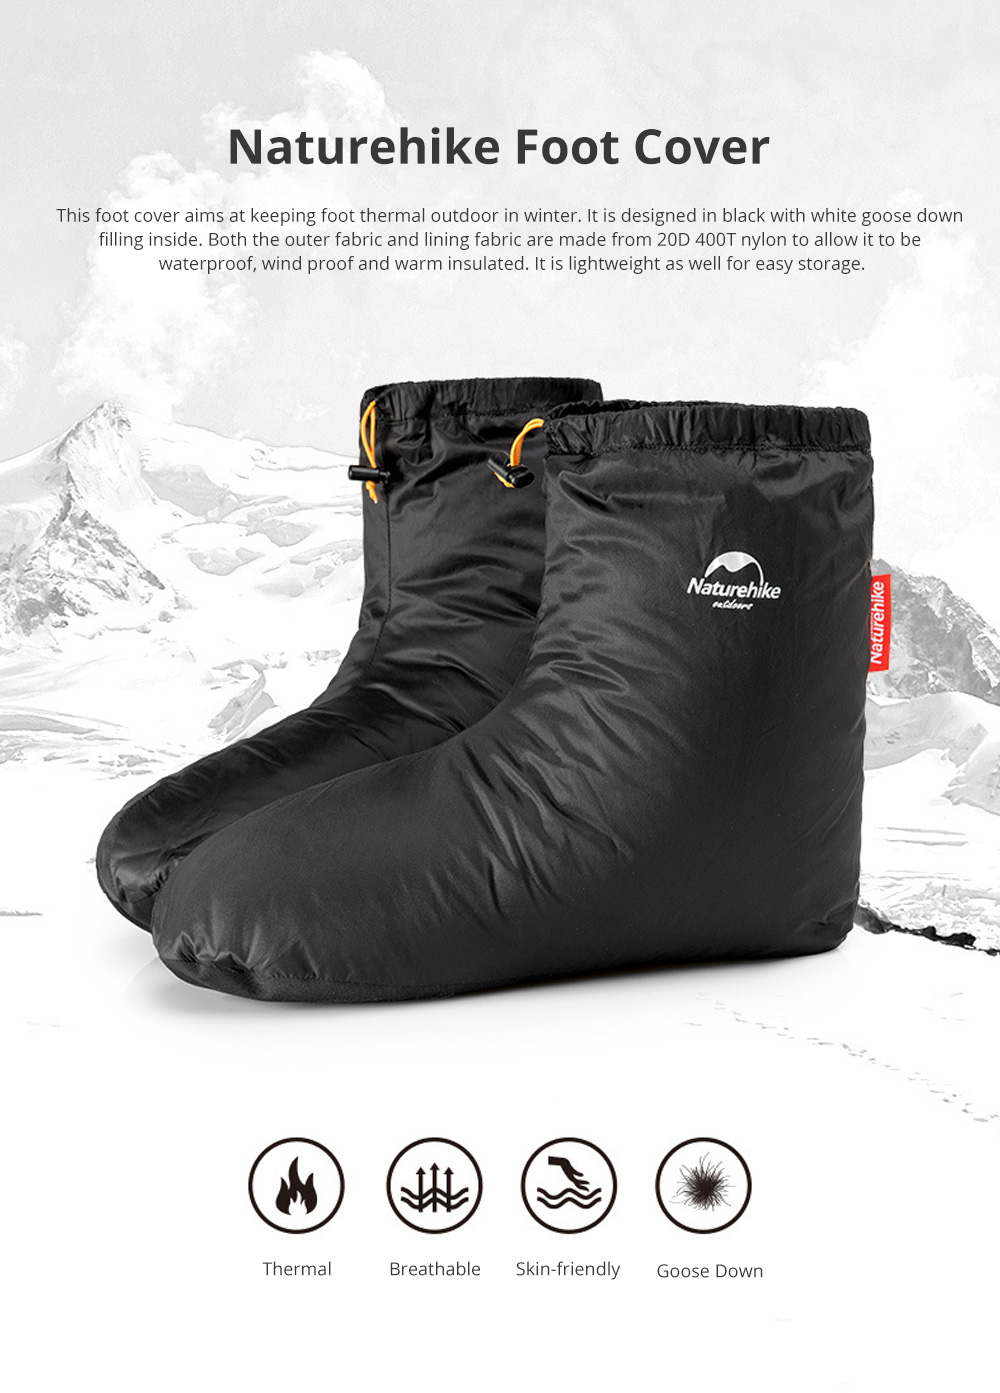 Naturehike Goose Down Foot Shoes Cover for Outdoor Use Wind Proof and Waterproof Foot Cover Thermal Lightweight 0